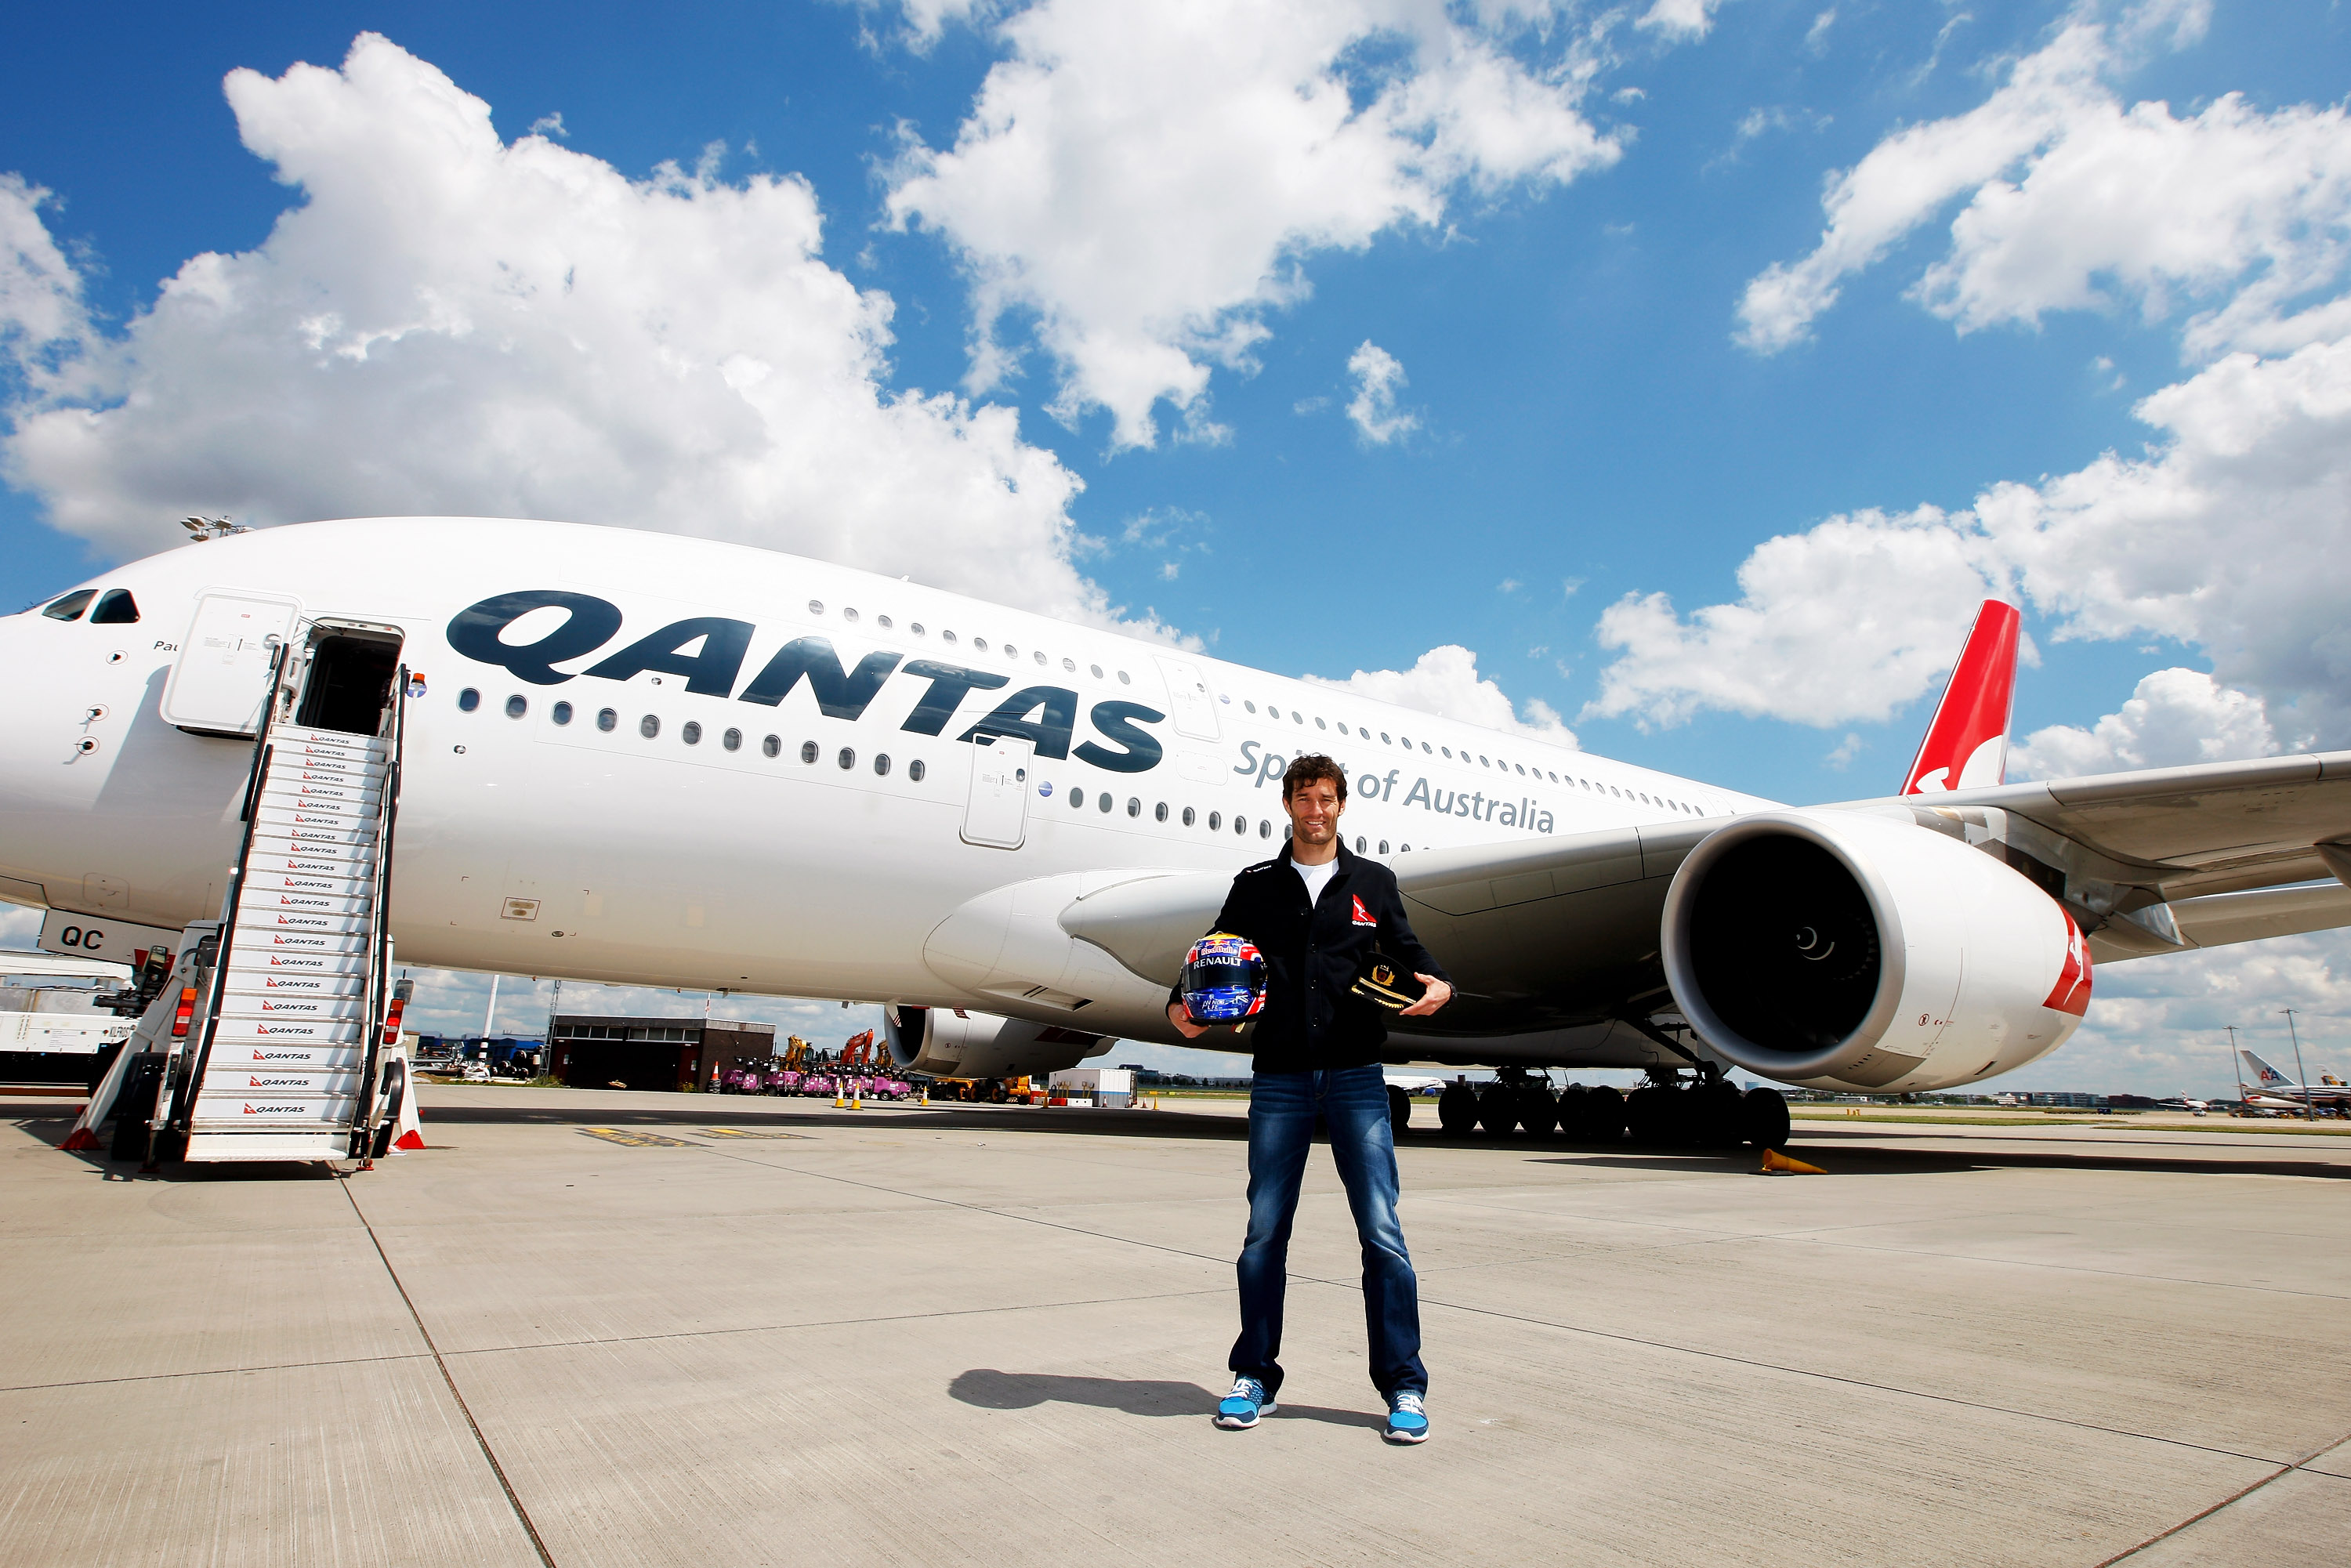 9. Qantas Airways